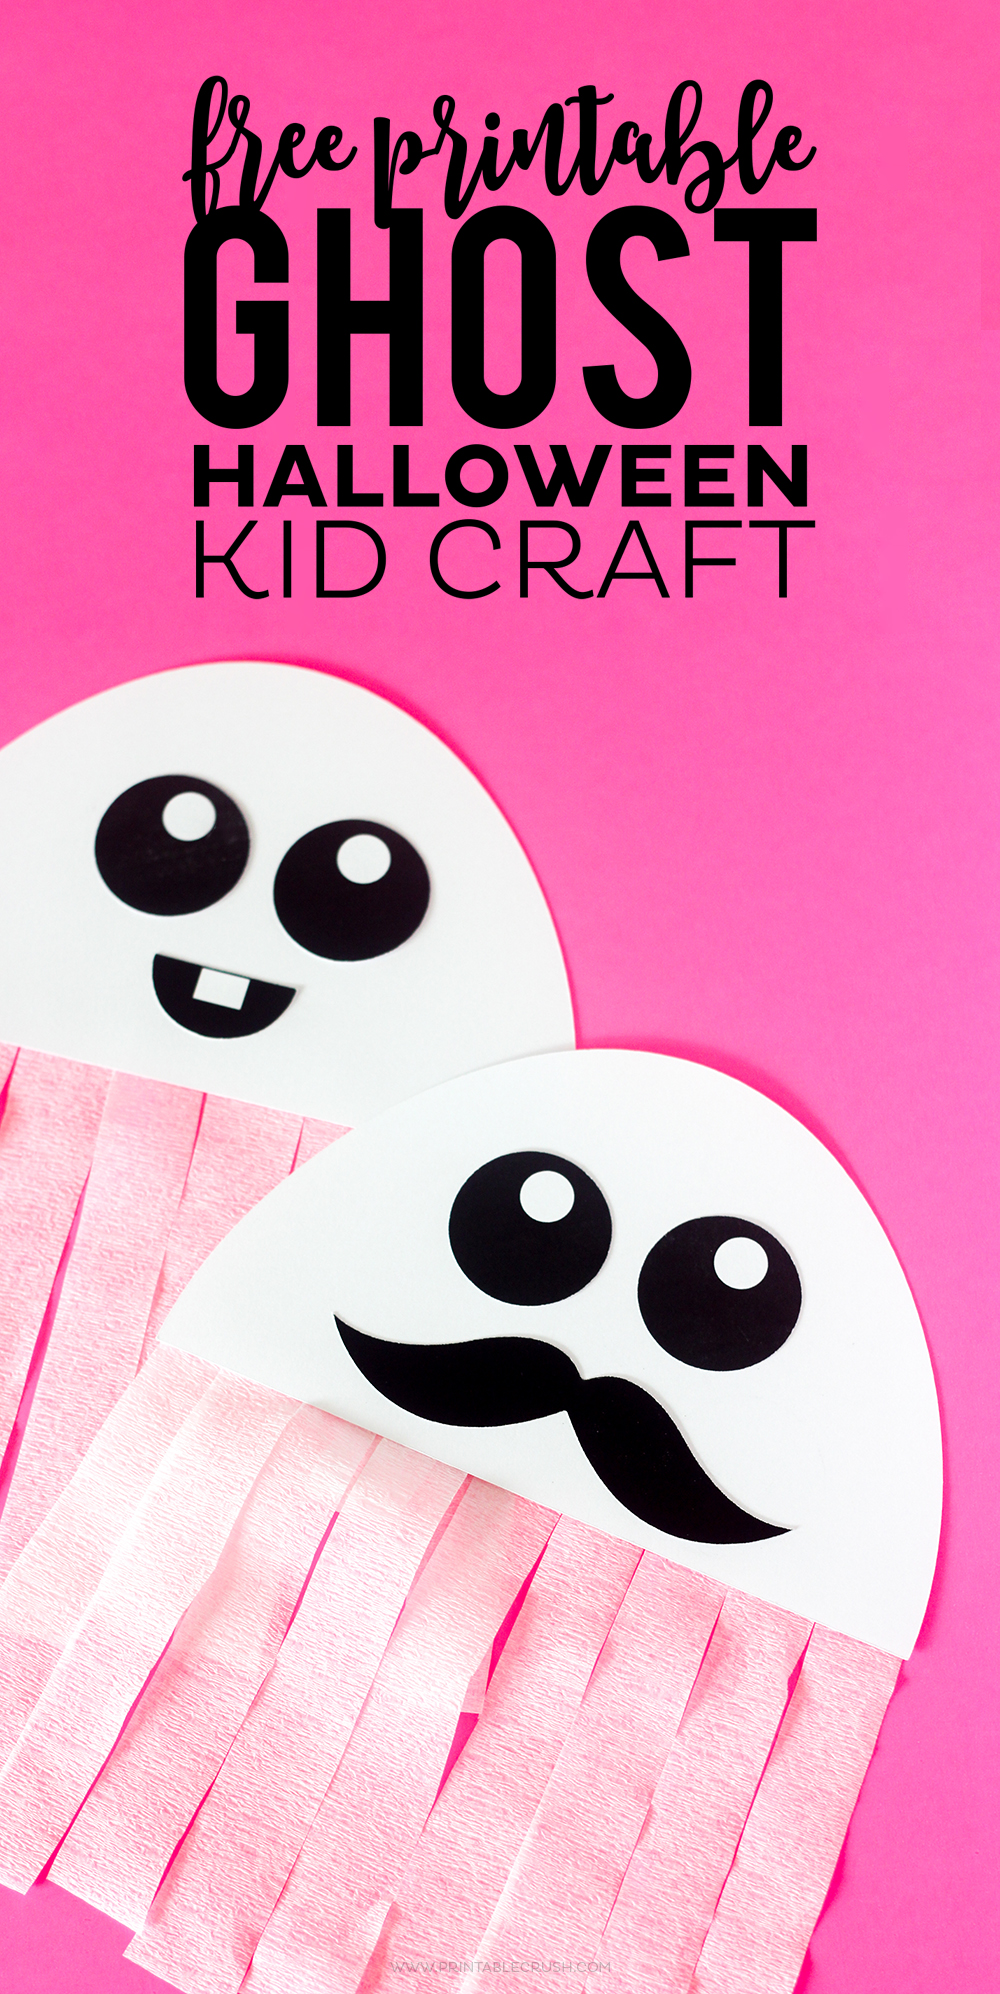 photograph relating to Printable Halloween Craft referred to as Cost-free Printable Ghost Halloween Craft - Printable Crush